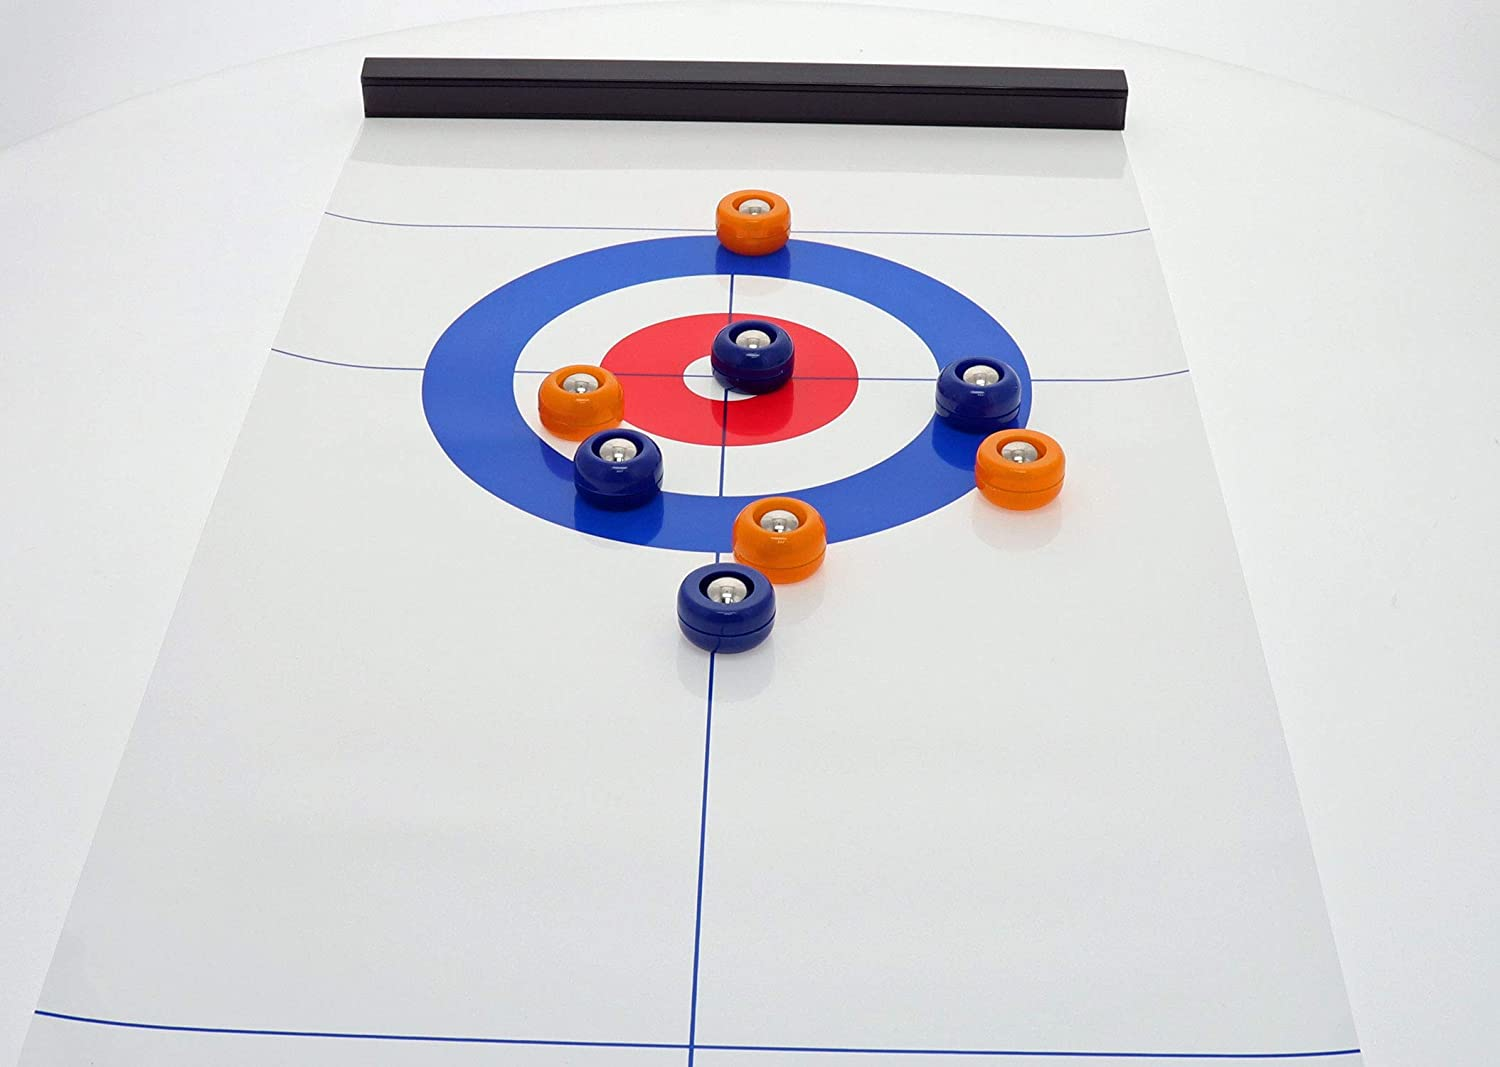 Table Top Curling Game Set, Tabletop Indoor Curling Game, Portable Curling Office Board Game, Family Games for Kids and Adults Teens, Fun Party Shuffle Sports Carnival Indoor Table Games. Great Gift